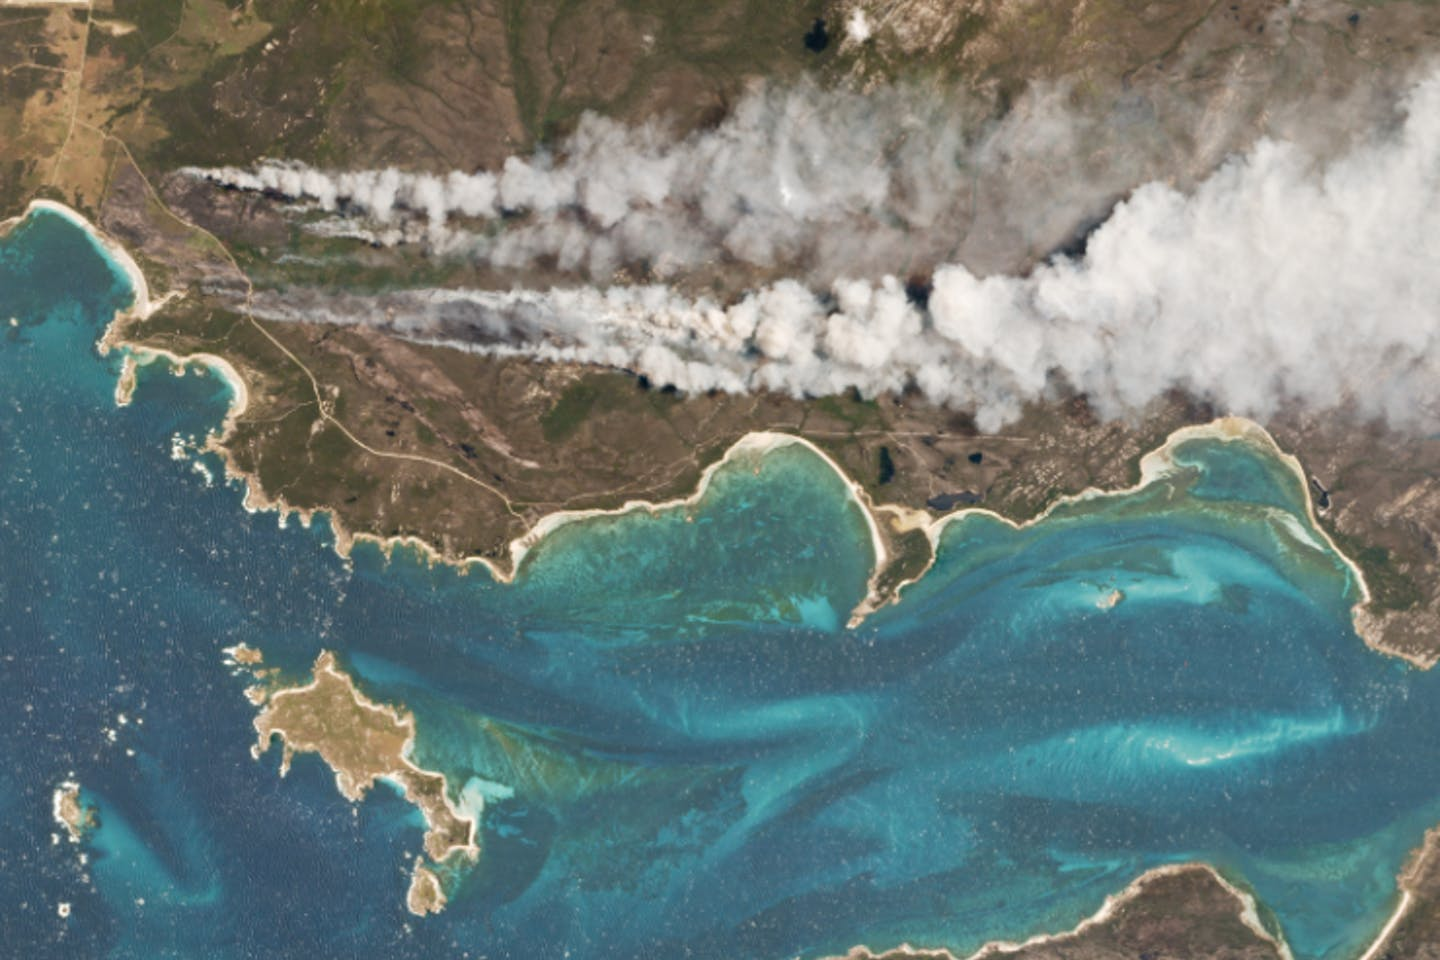 On Cape Barren Island, Australia, a vegetation fire started along the coast.